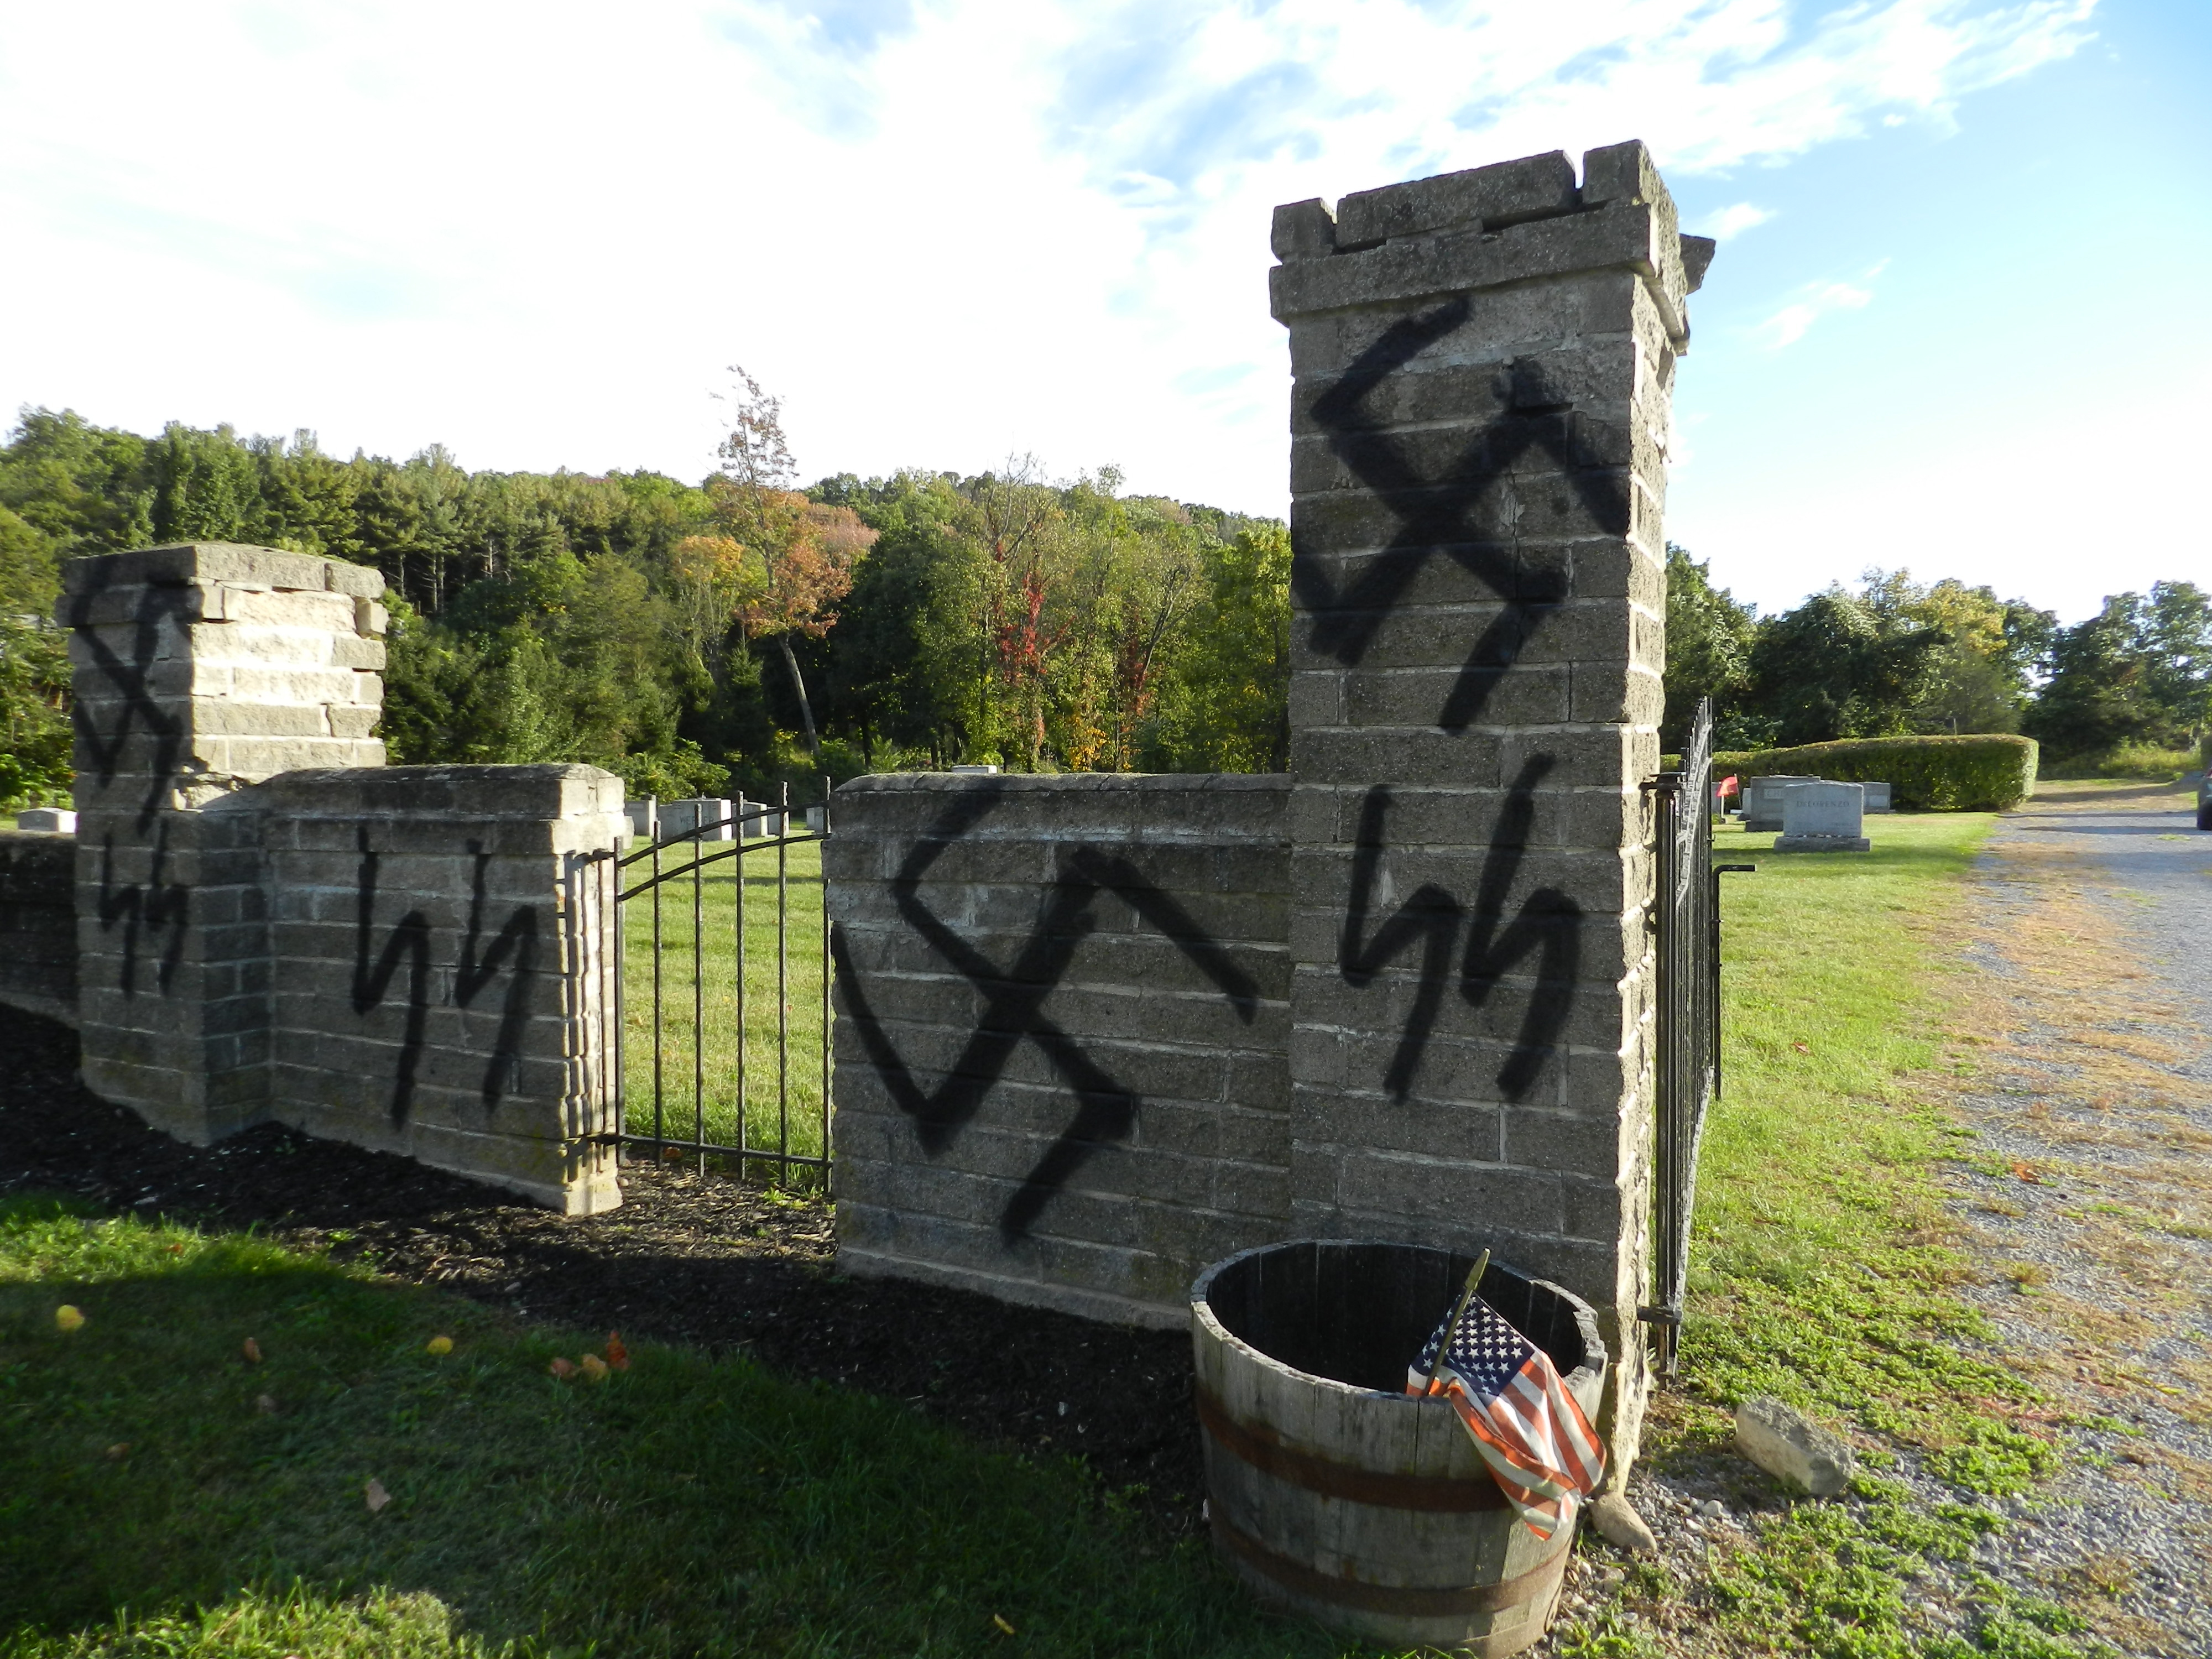 Temple Beth Shalom's cemetery in the Town of Warwick was found desecrated with anti-Semitic graffiti on Oct. 9, 2016.